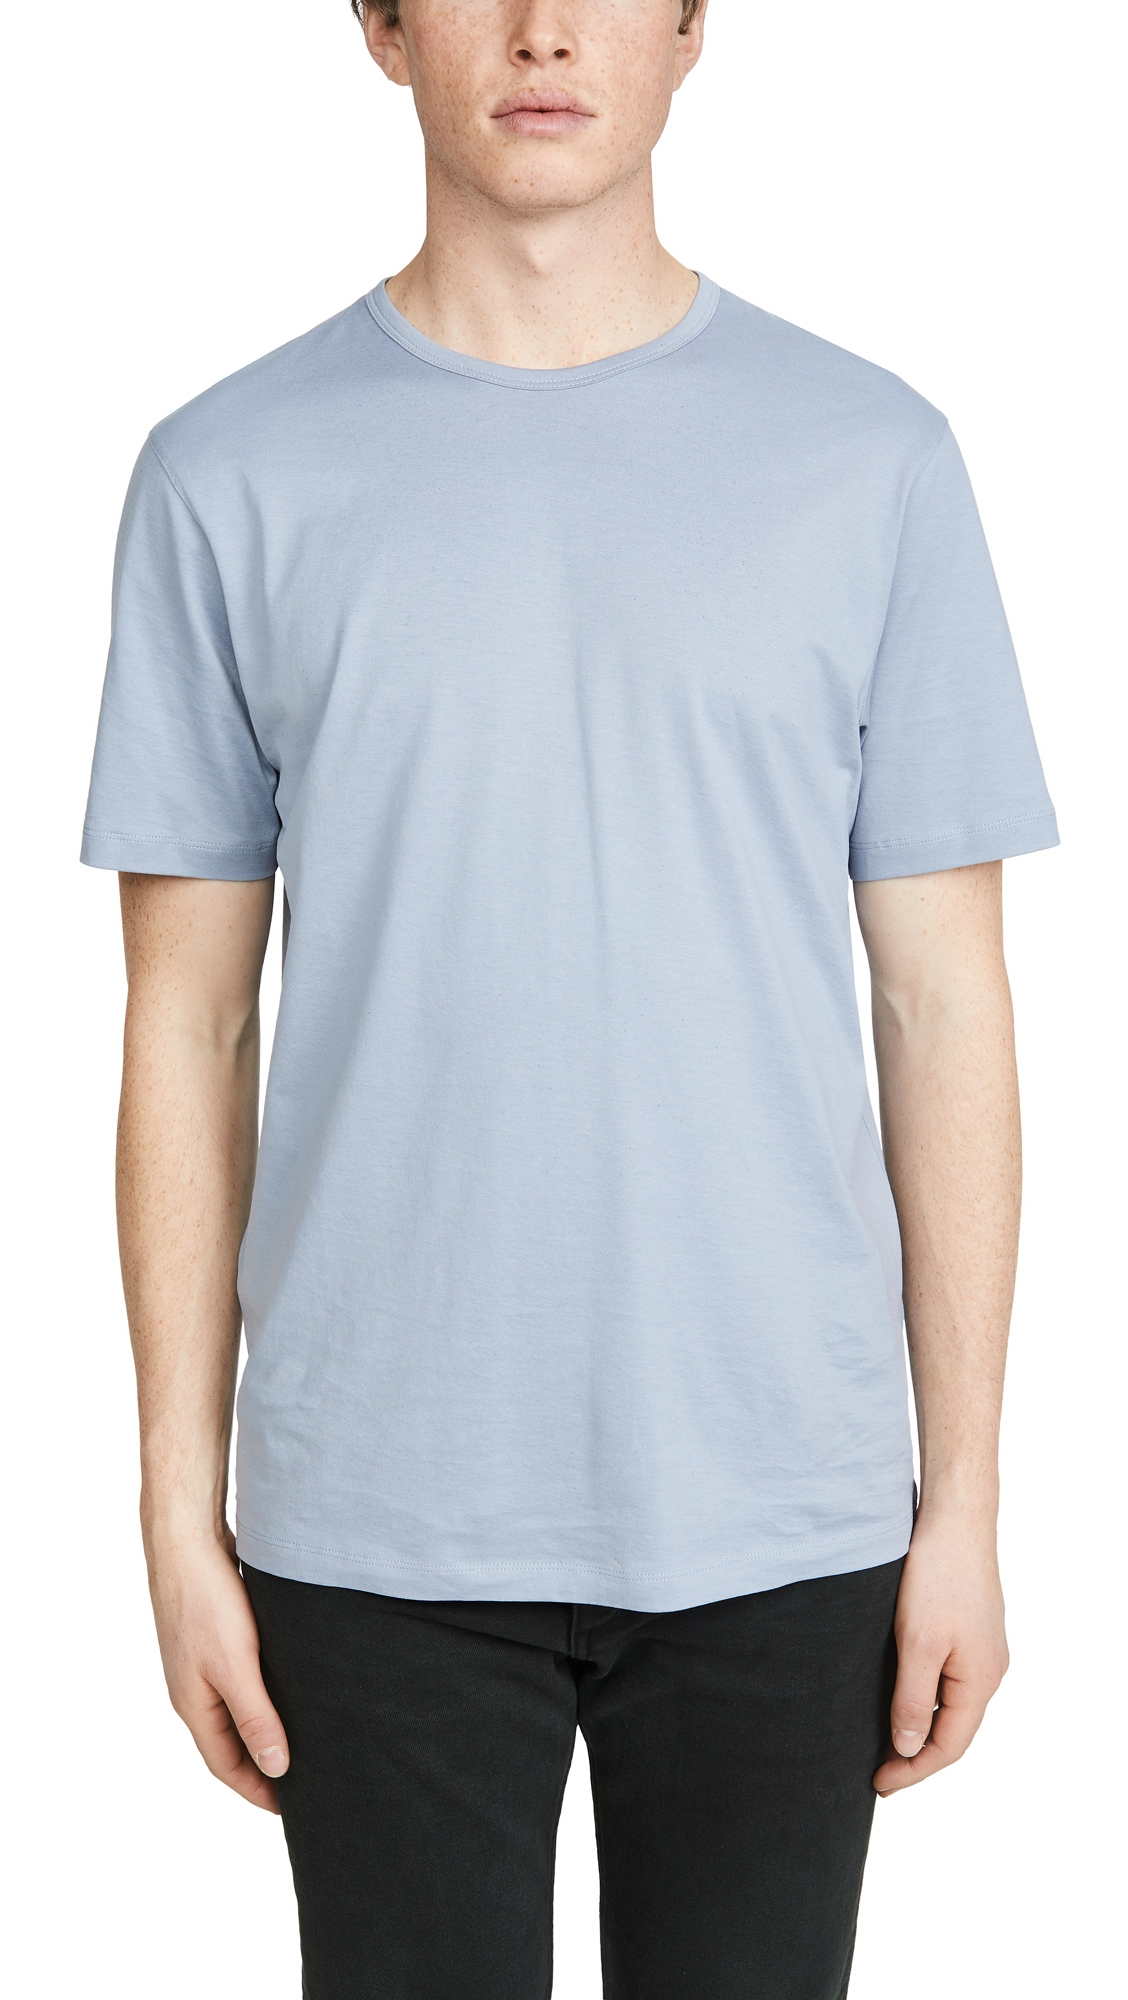 Theory T-shirts PRECISE LUX COTTON T-SHIRT